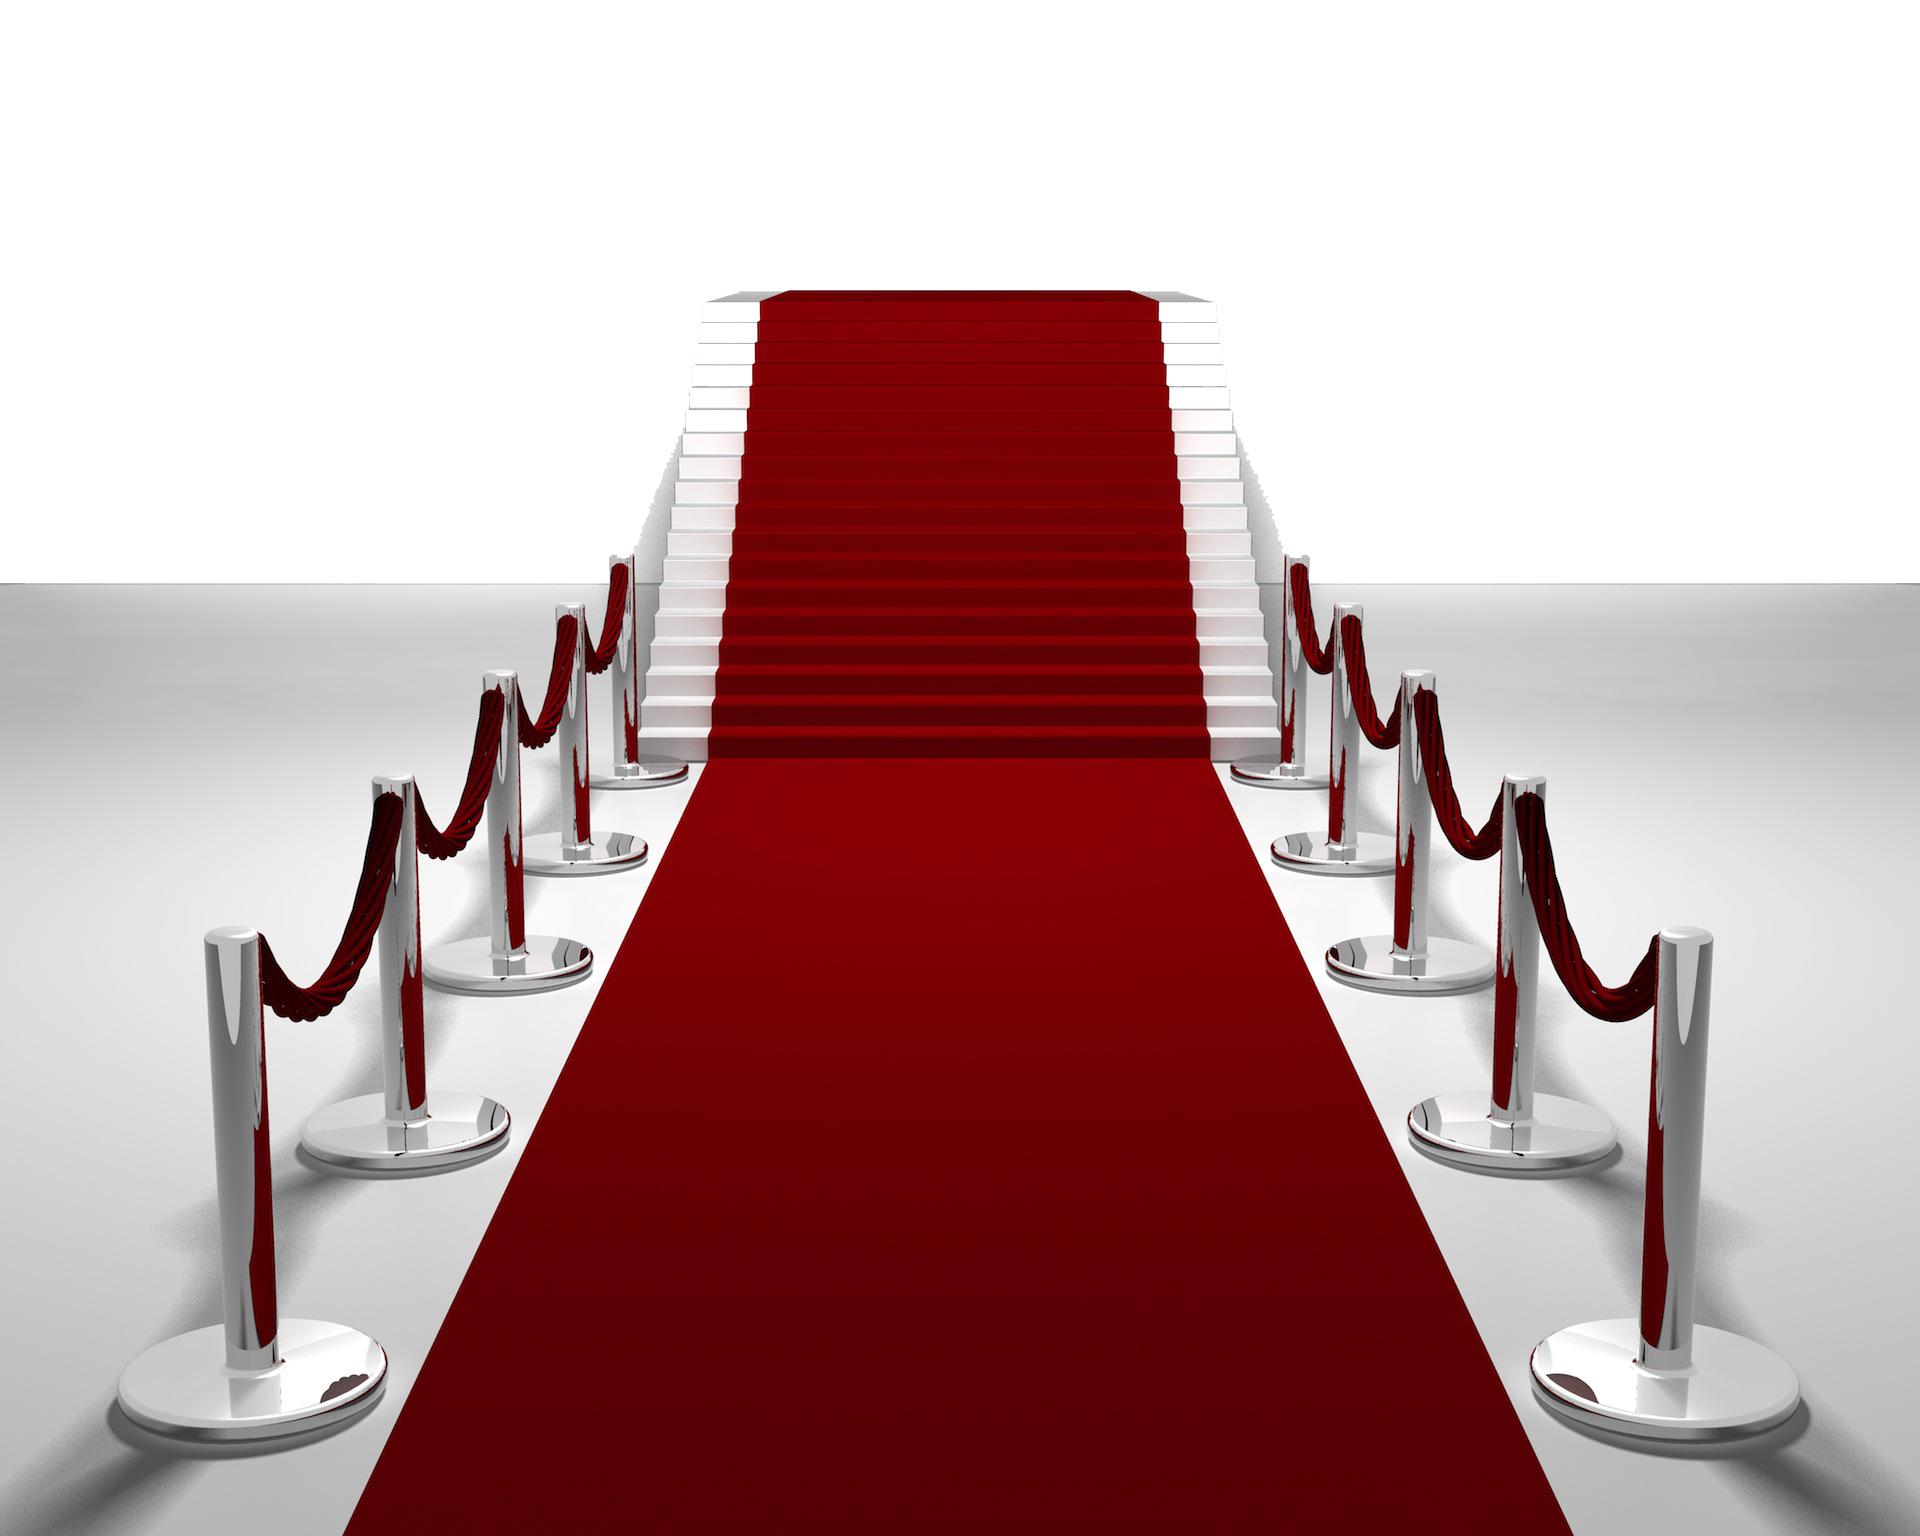 Png transparent image photo. Staircase clipart red carpet